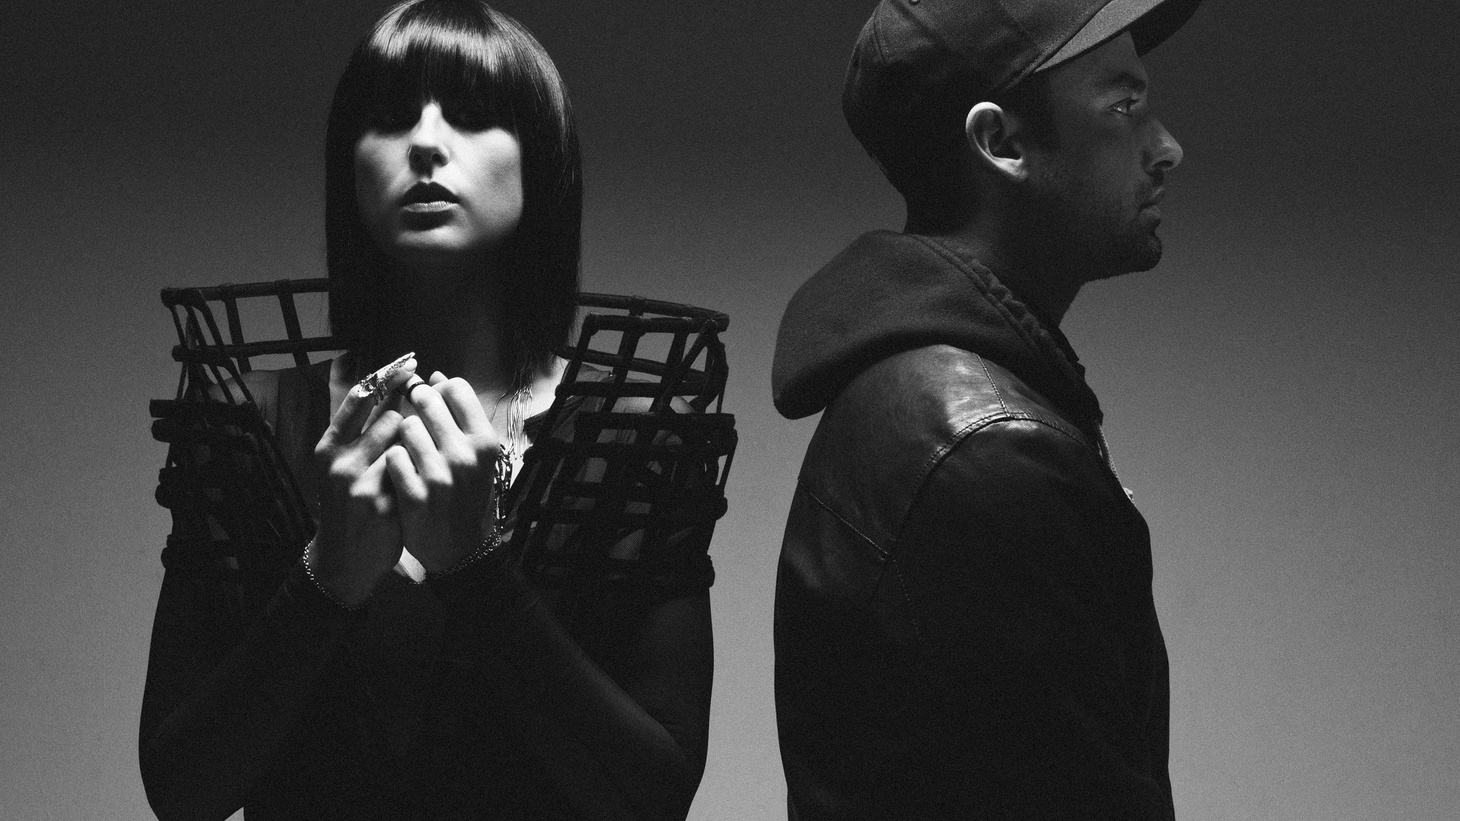 Josh Carter and Sarah Barthel, the duo behind Phantogram have been making great music for some time but they are stepping it up for their major label debut.